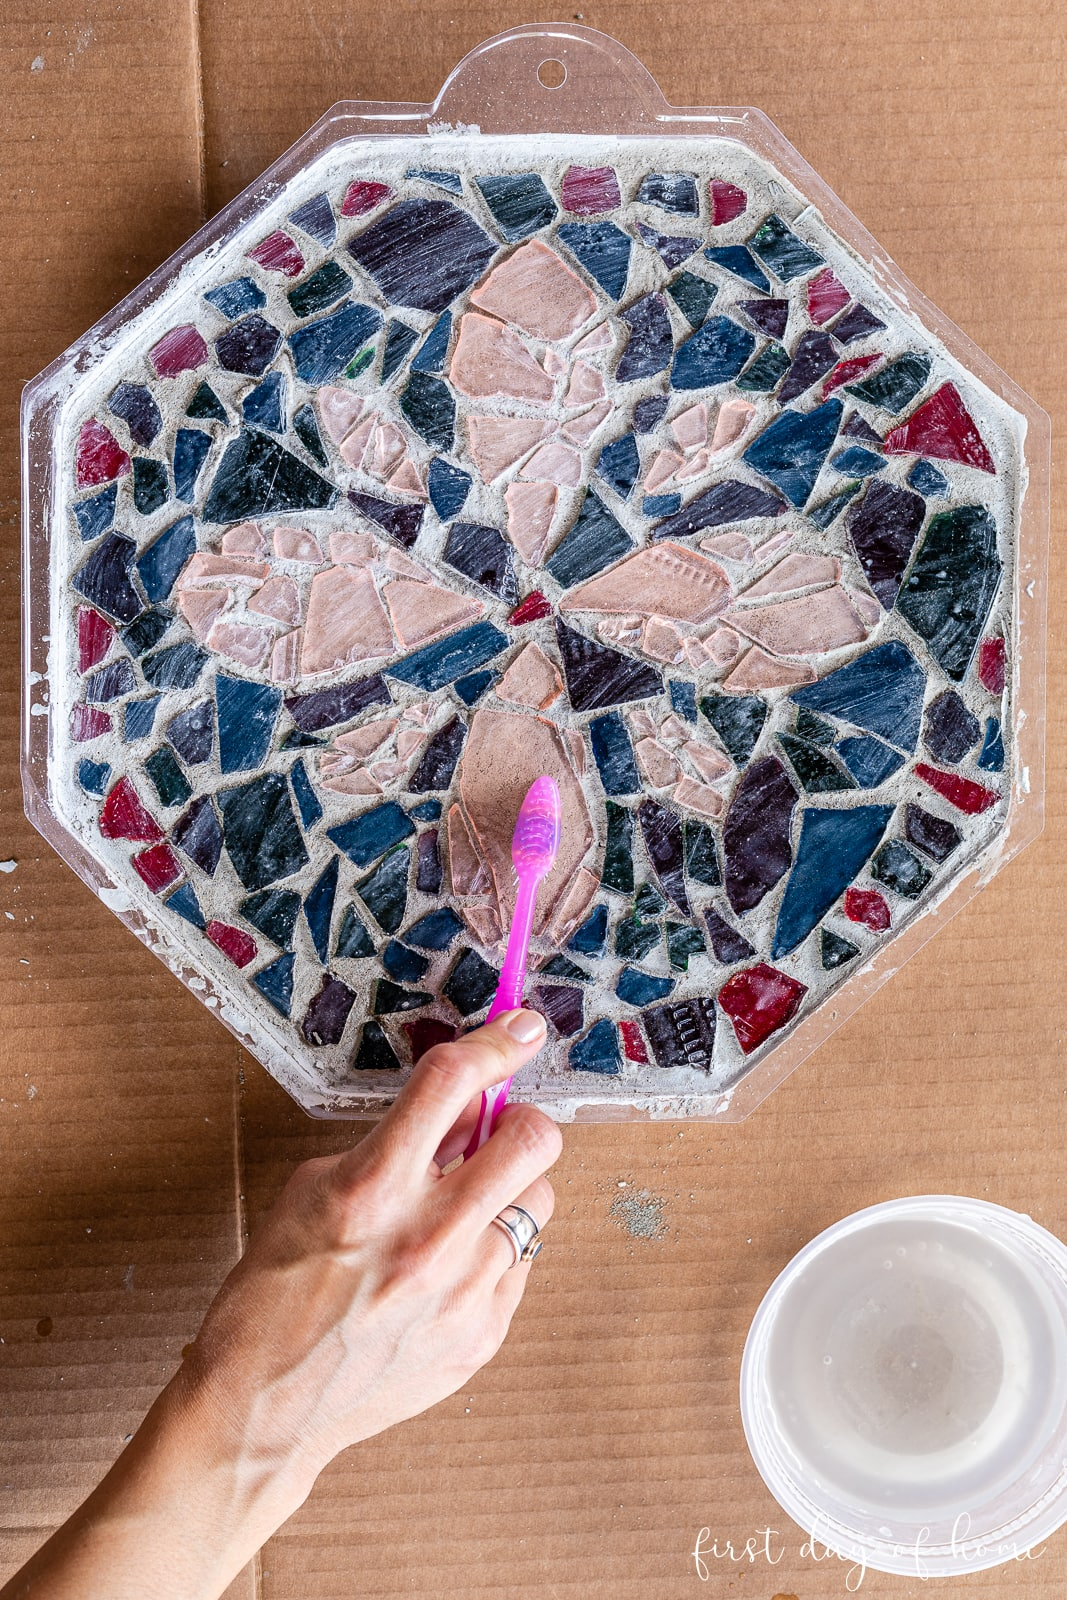 Cleaning mosaic tiles with a wet toothbrush after the stepping stone mix has dried 24 hours.